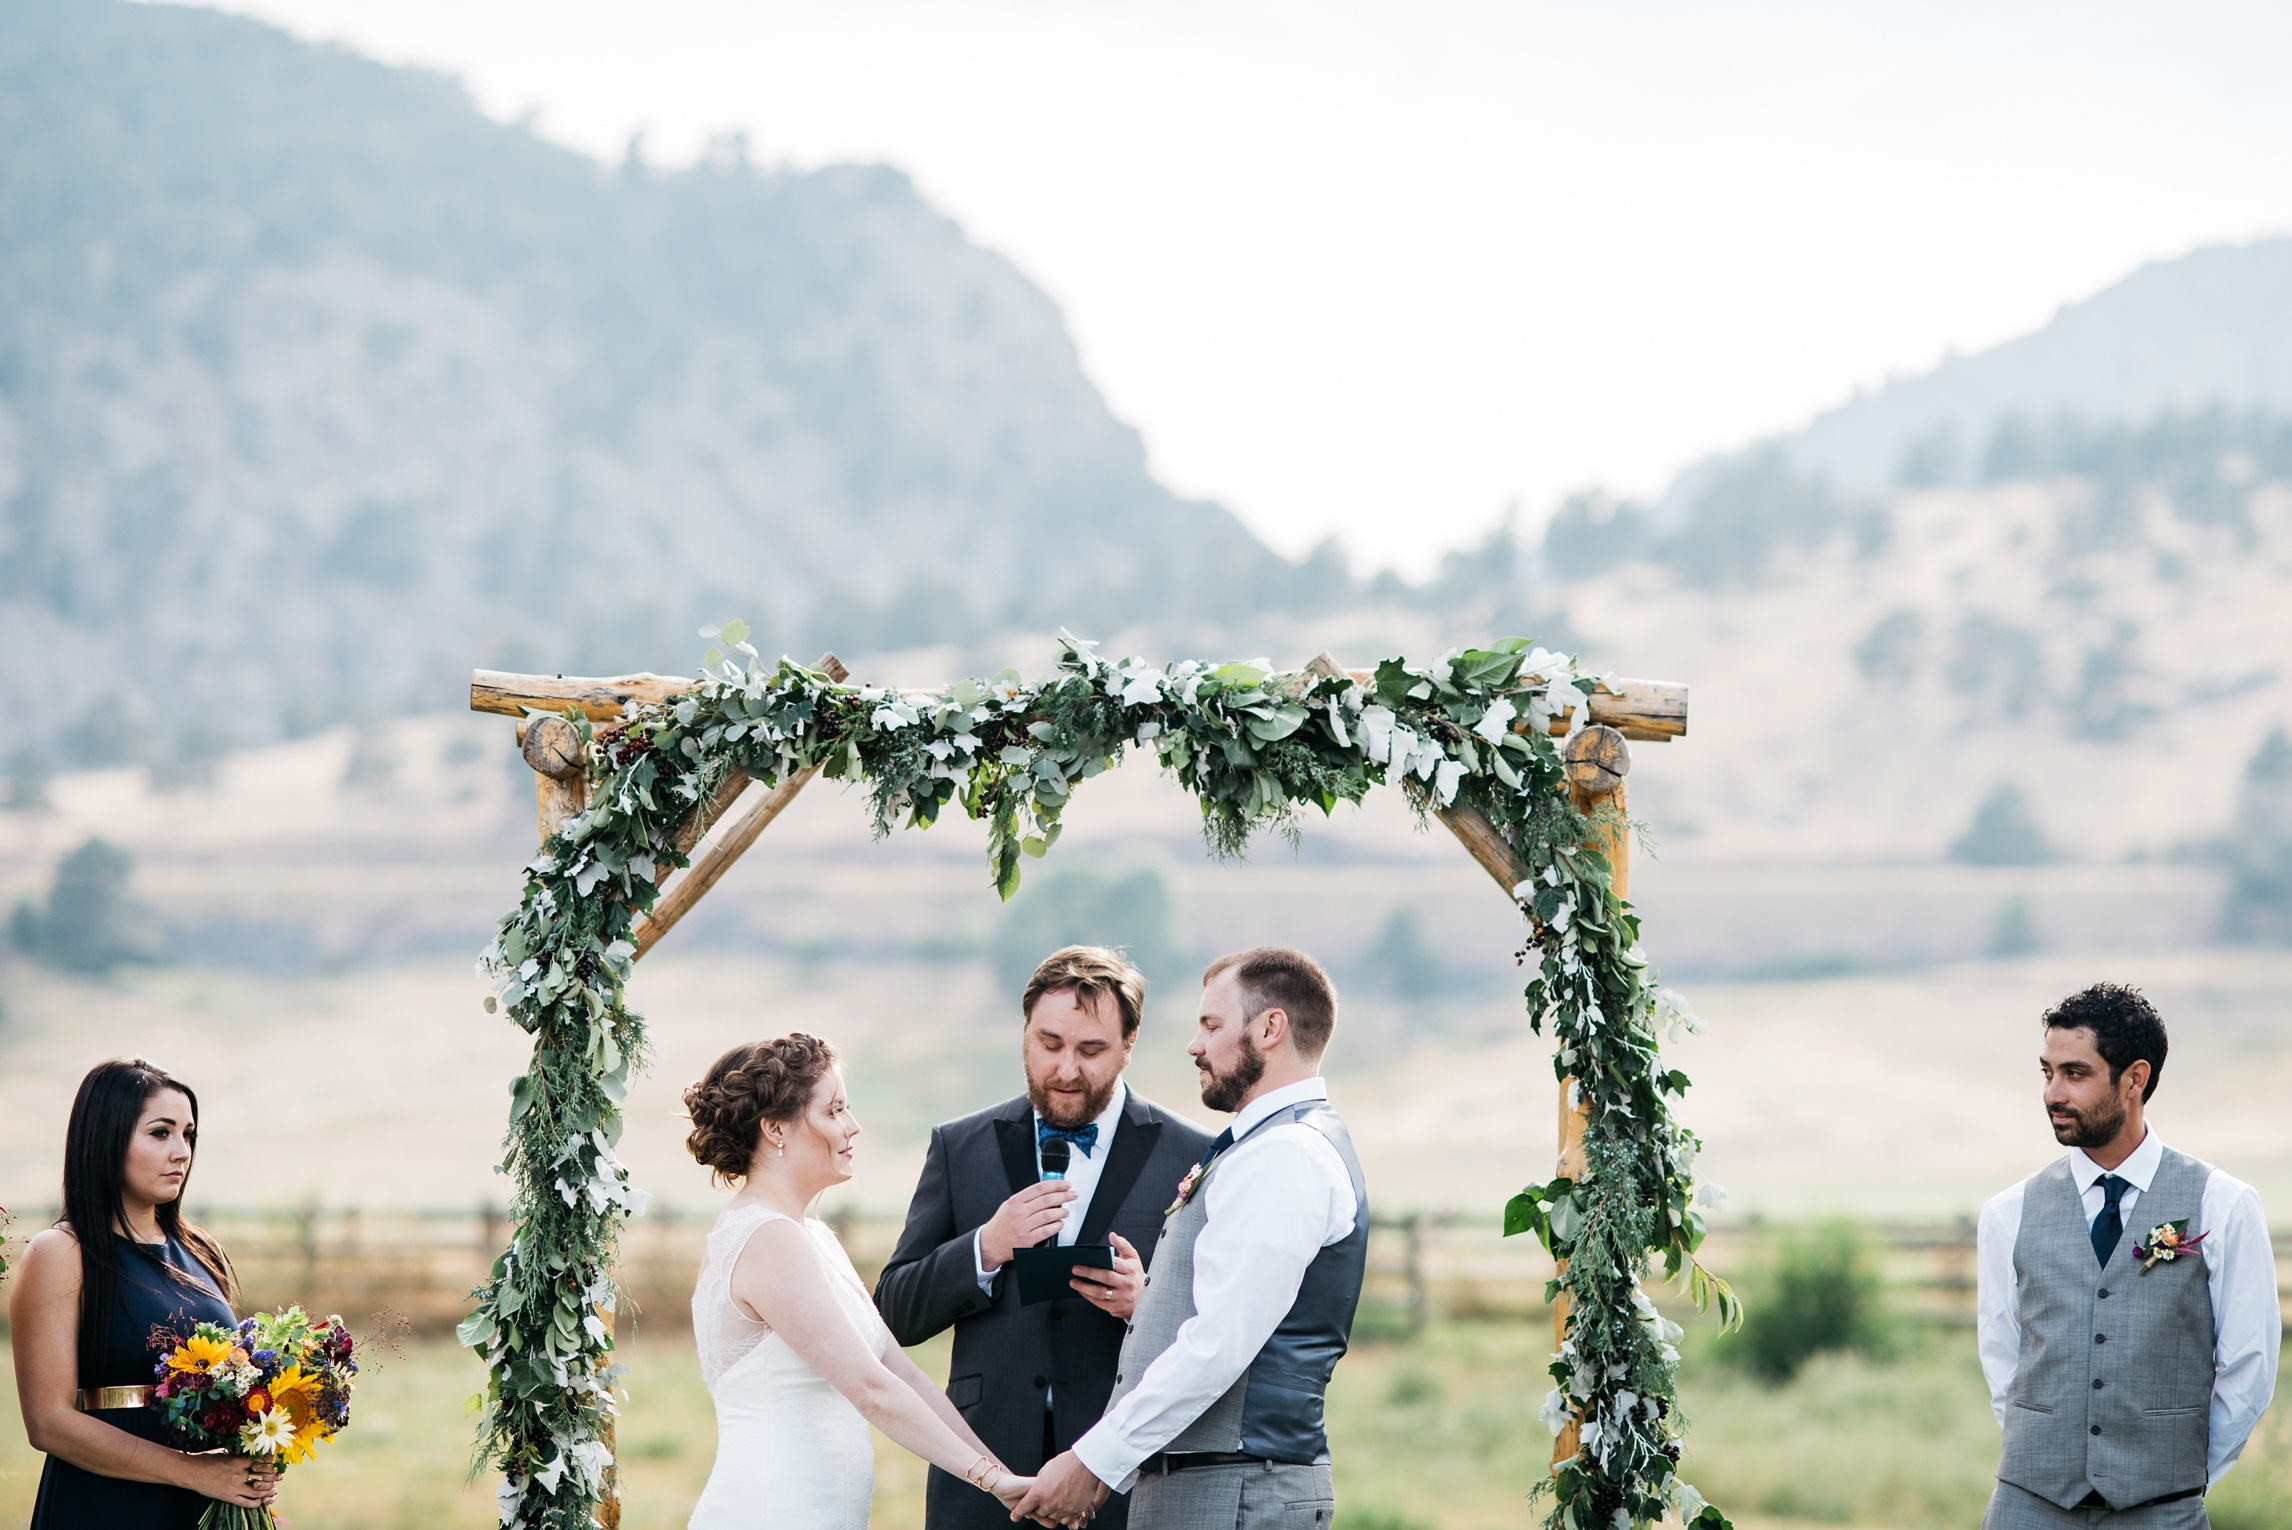 A bride and groom exchange vows on their wedding day at Sylvan Dale Ranch near Loveland, Colorado. Wedding Photography by Sonja Salzburg of Sonja K Photography.